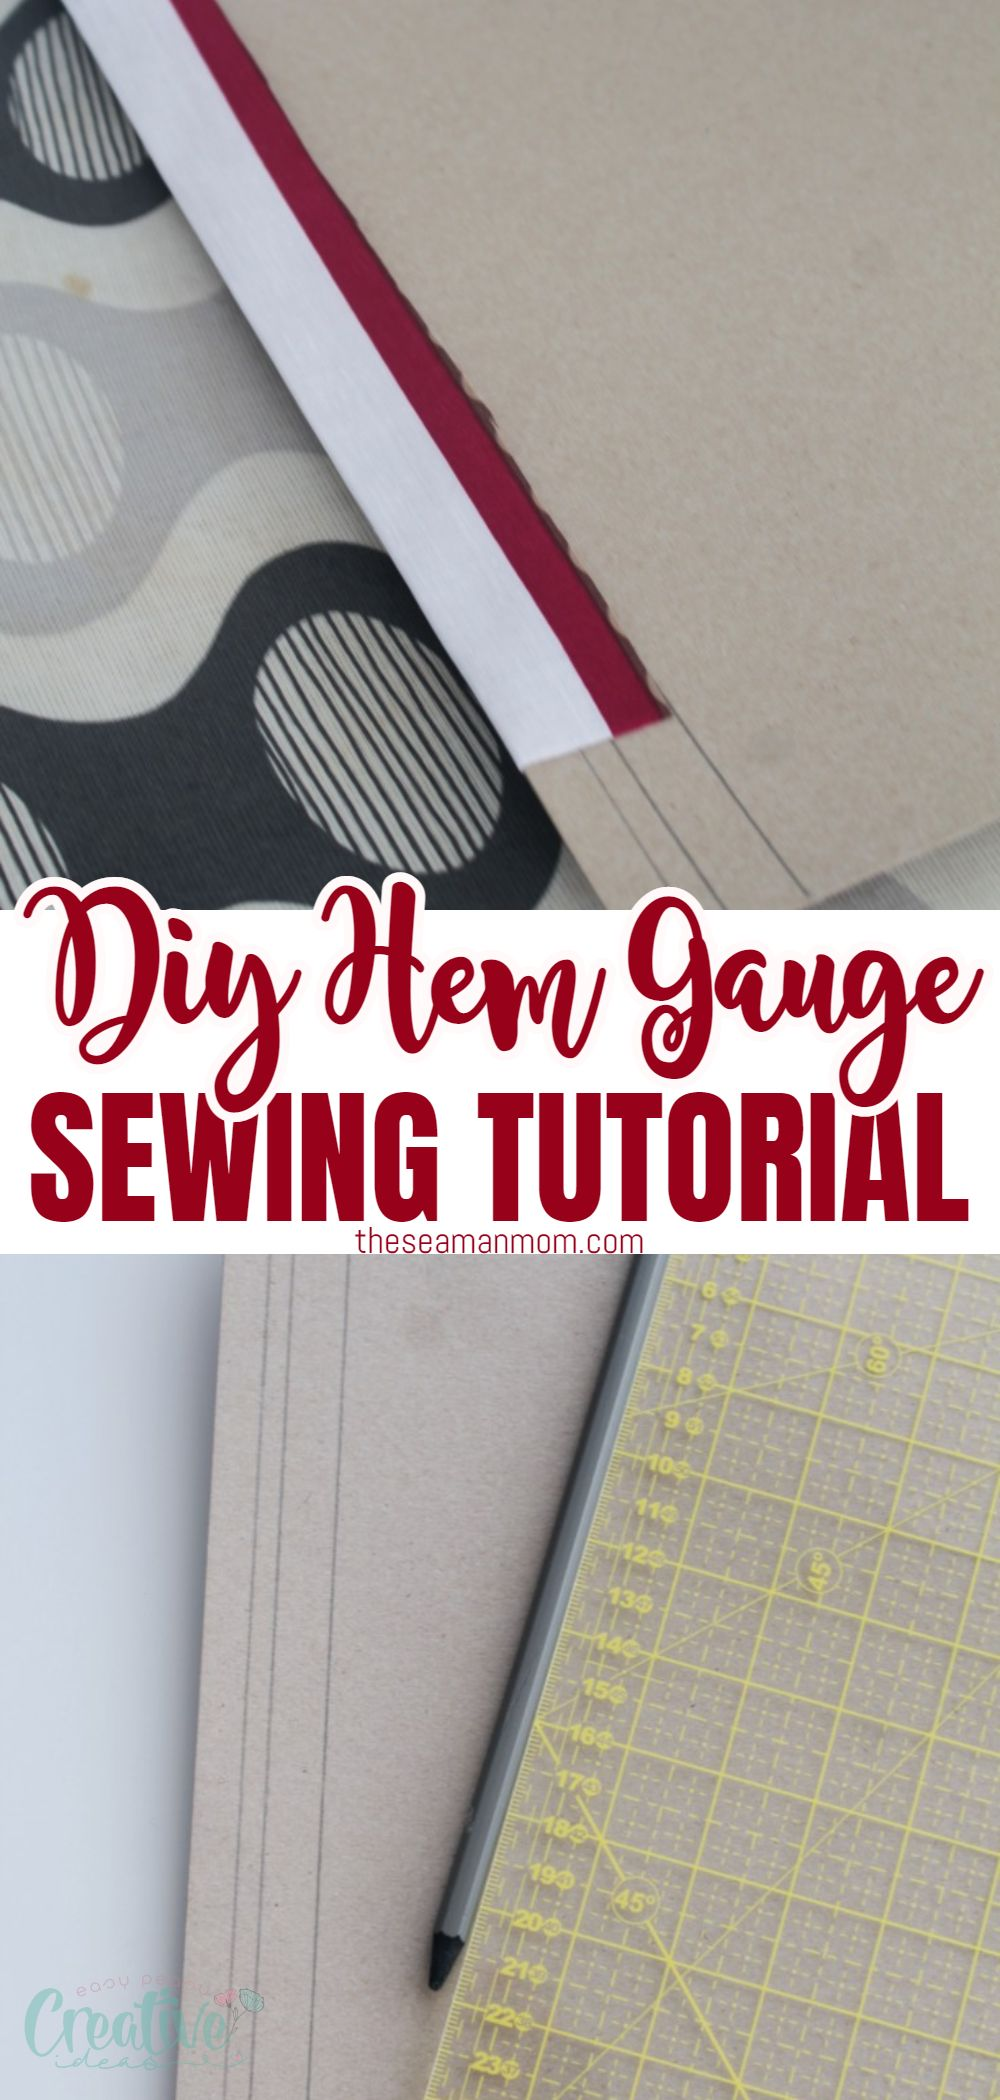 Struggling to get neat, even hems all the time? Making your own hem gauge is so easy, simple and affordable! Here you'll learn the easy way to hem using a DIY hem ruler! via @petroneagu